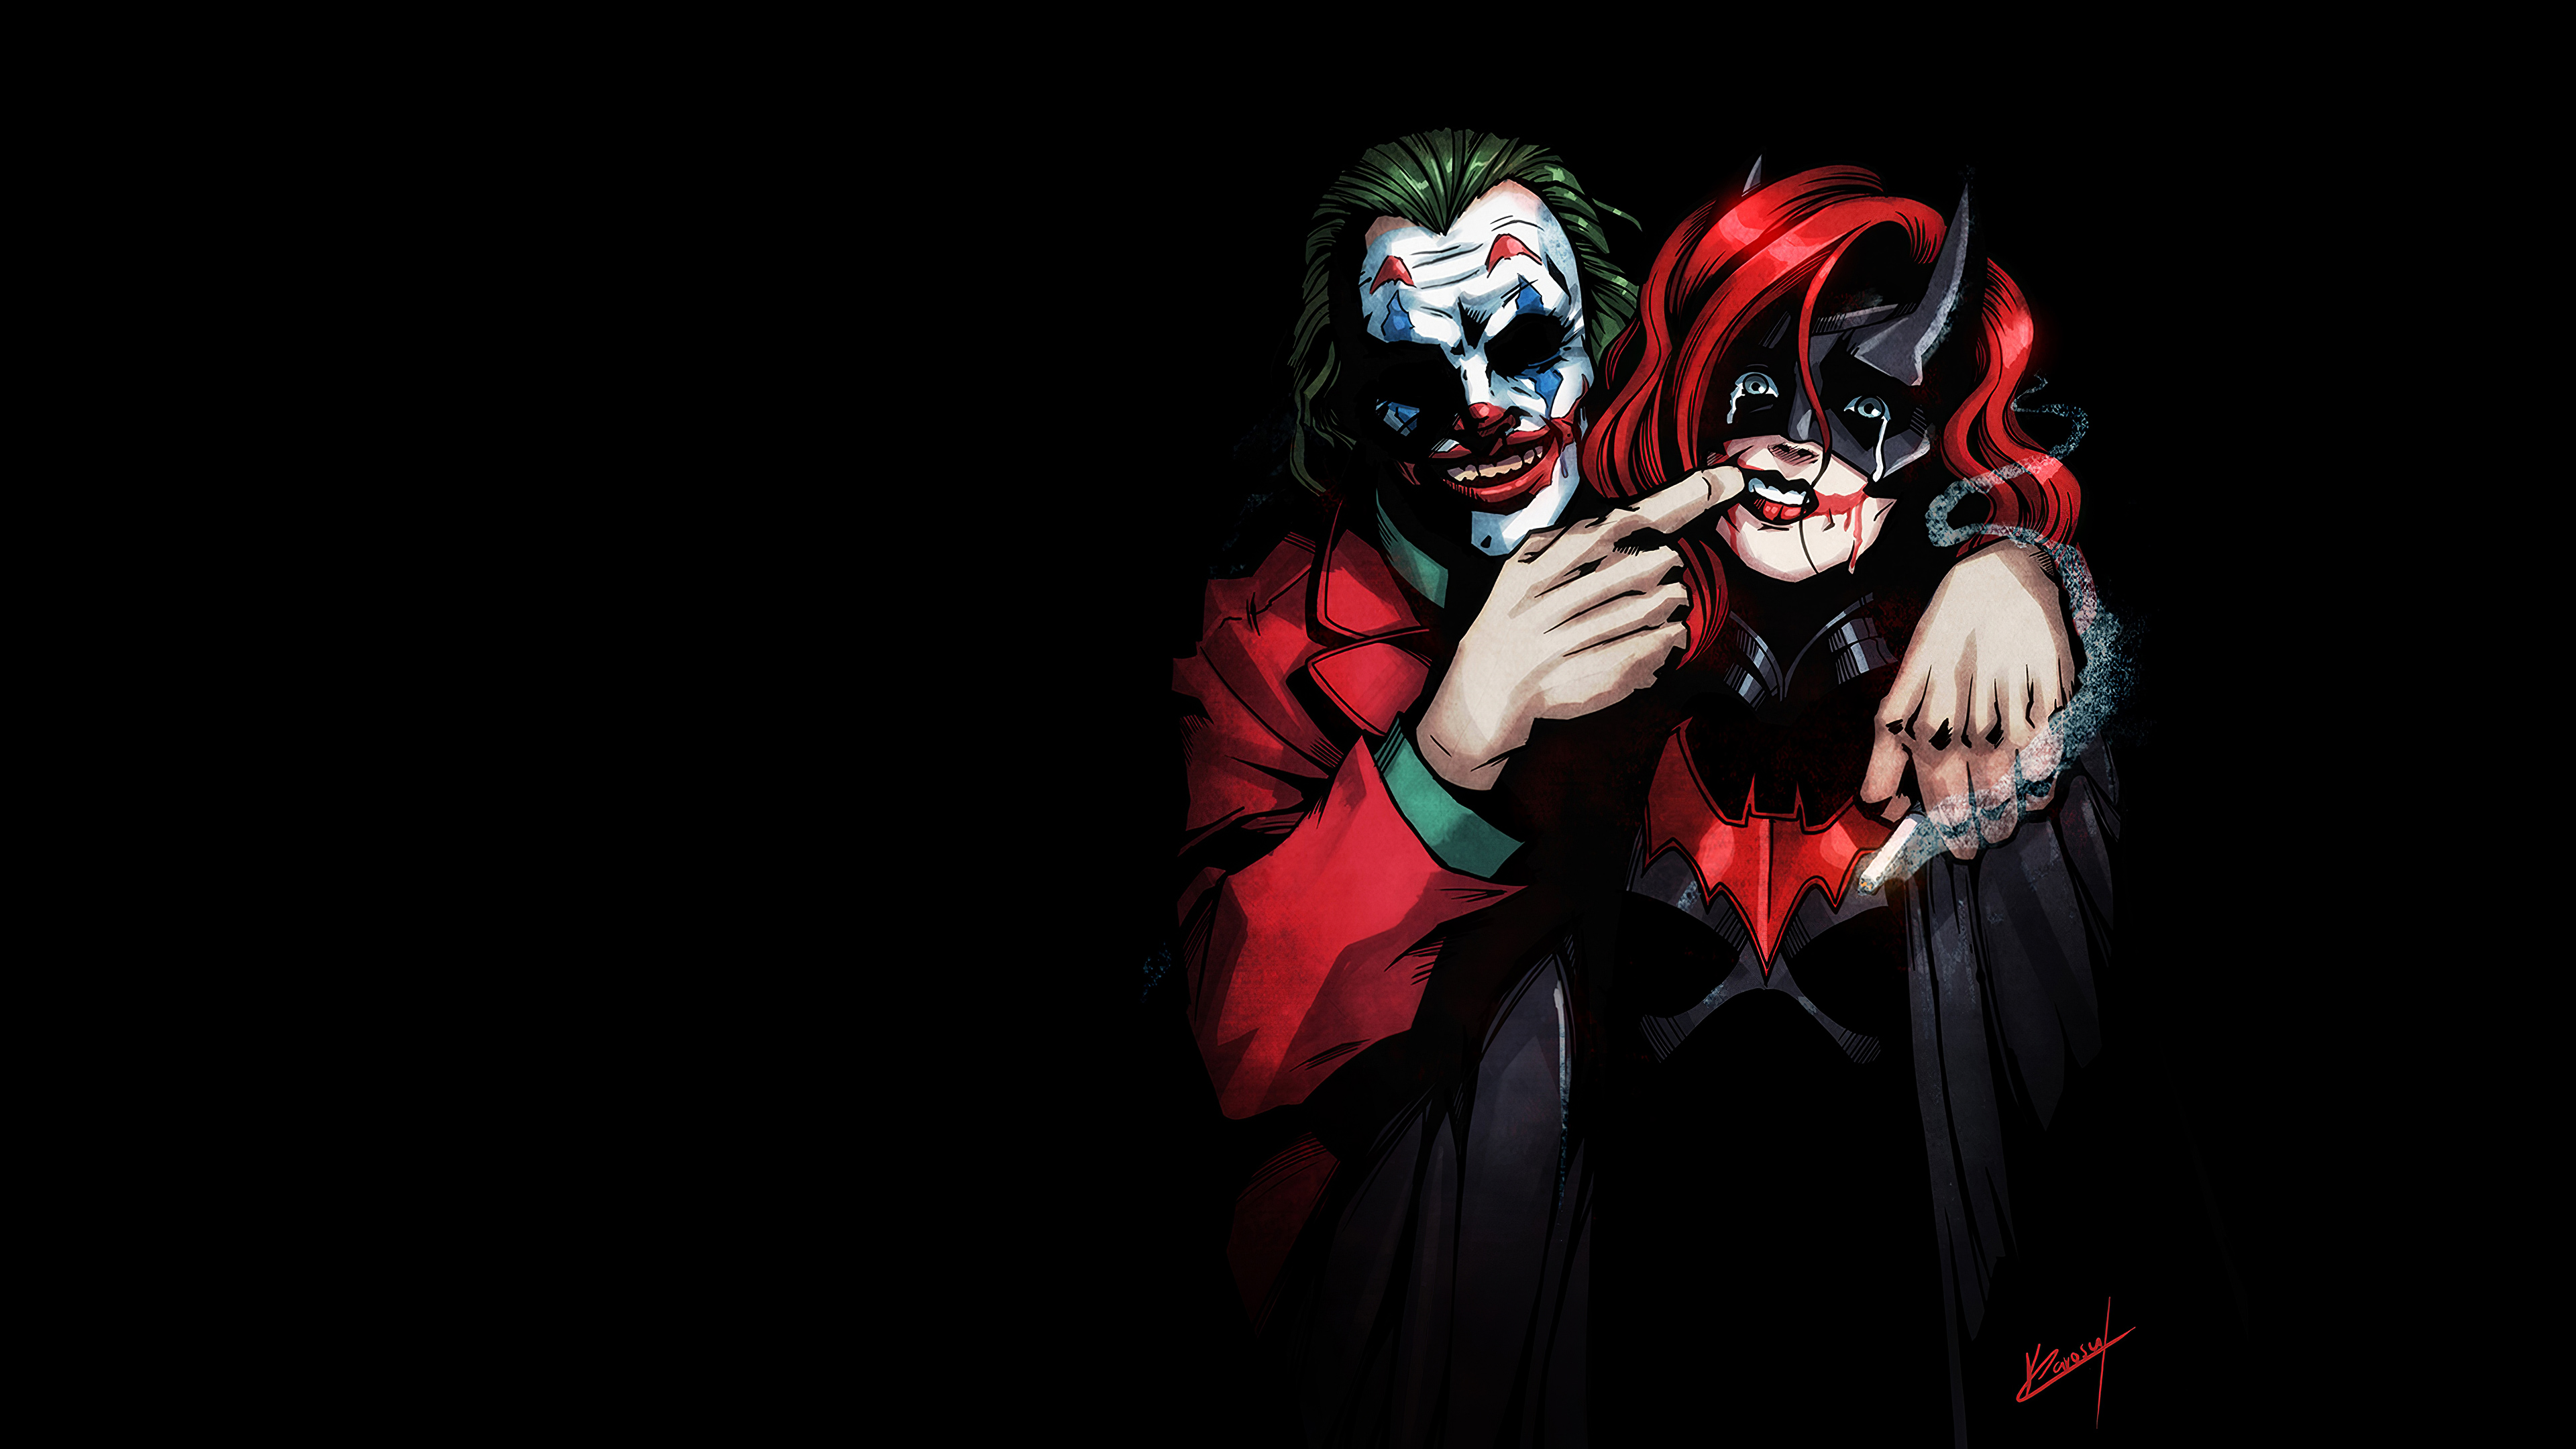 keep smiling 1572369008 - Keep Smiling - supervillain wallpapers, superheroes wallpapers, joker wallpapers, hd-wallpapers, deviantart wallpapers, batgirl wallpapers, 4k-wallpapers